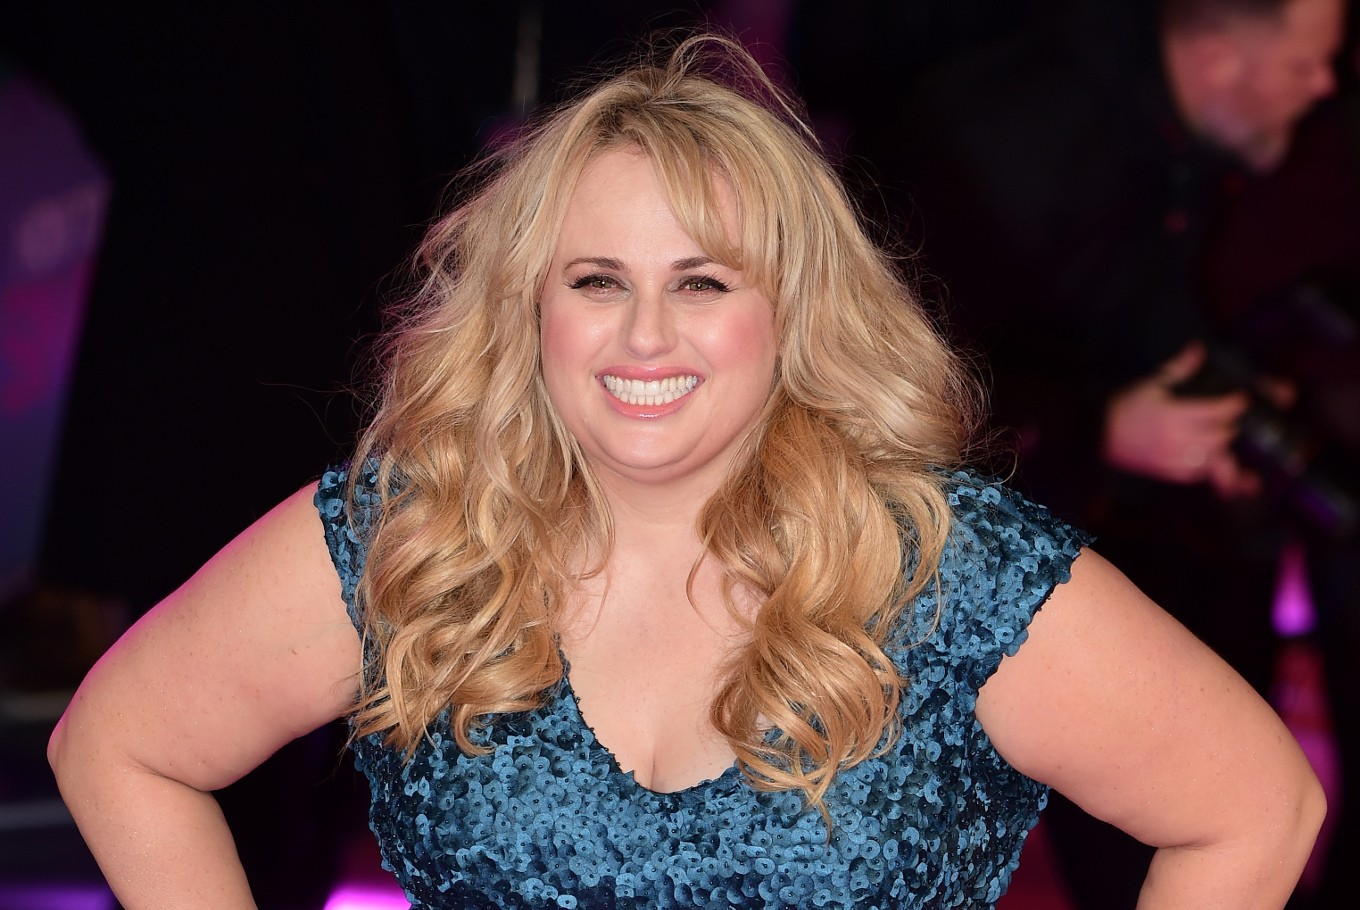 Rebel Wilson to give record defamation payout to charity - Entertainment -  The Jakarta Post